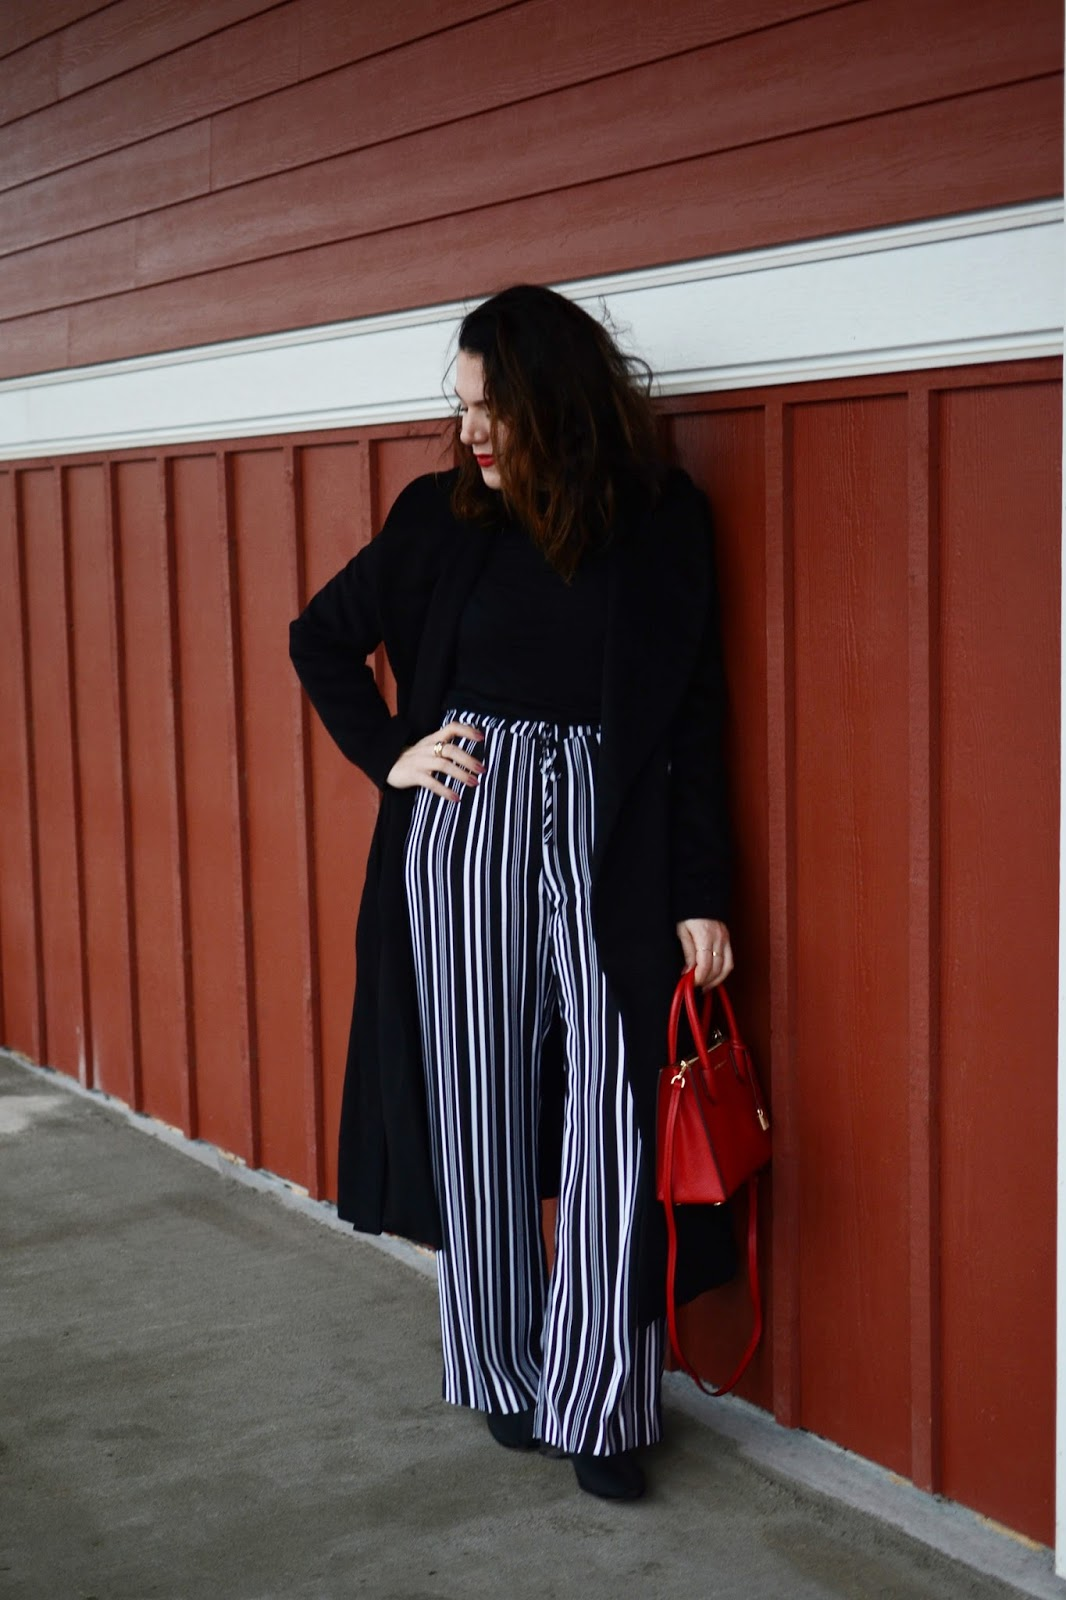 Le Chateau striped pants trousers outfit vancouver fashion blogger aleesha harris